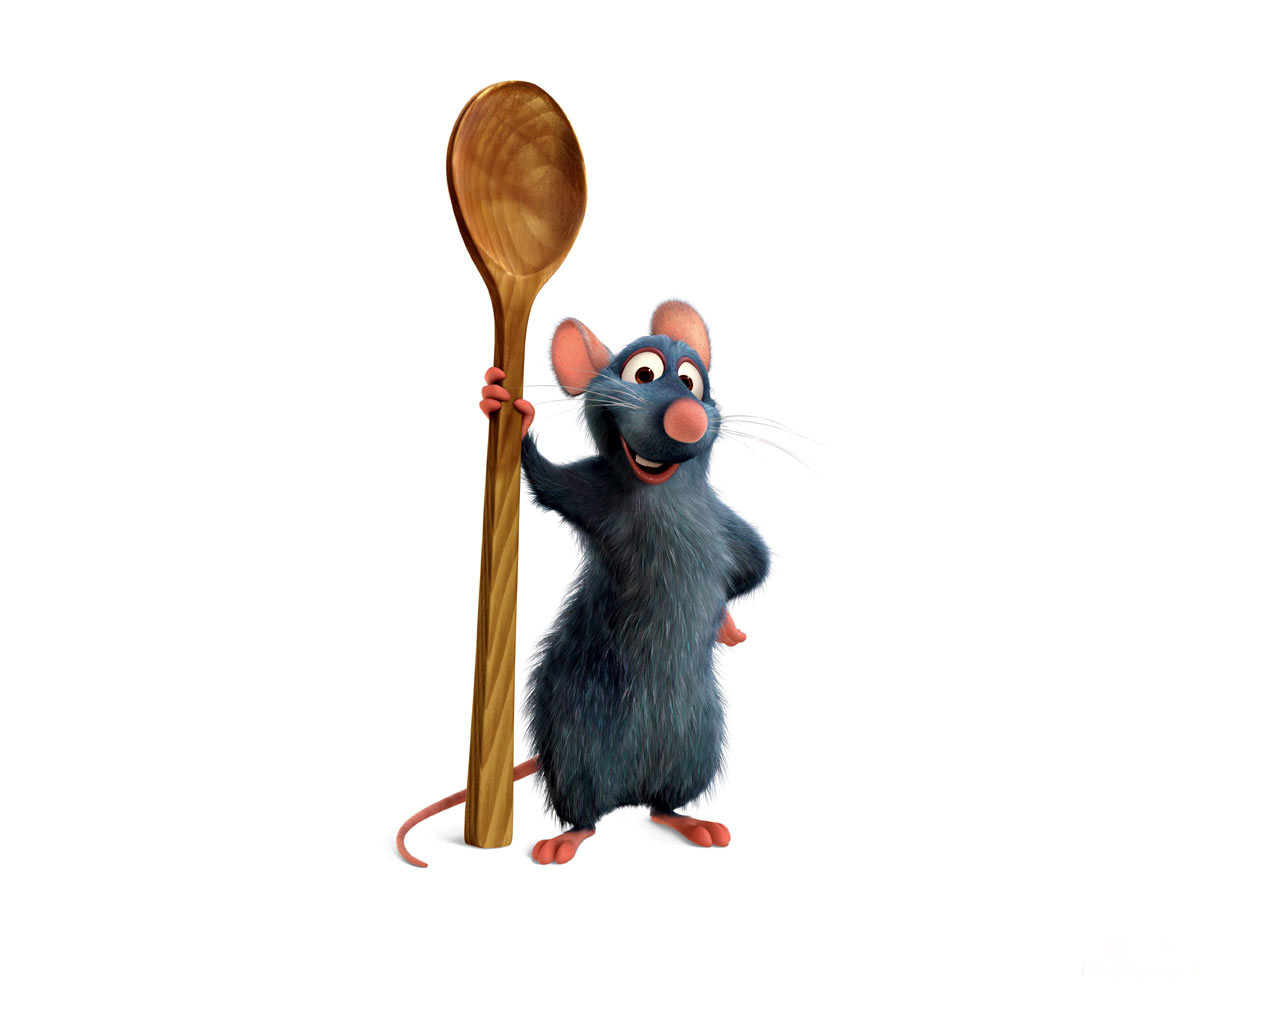 12708 download wallpaper Cartoon, Mice, Ratatouille screensavers and pictures for free